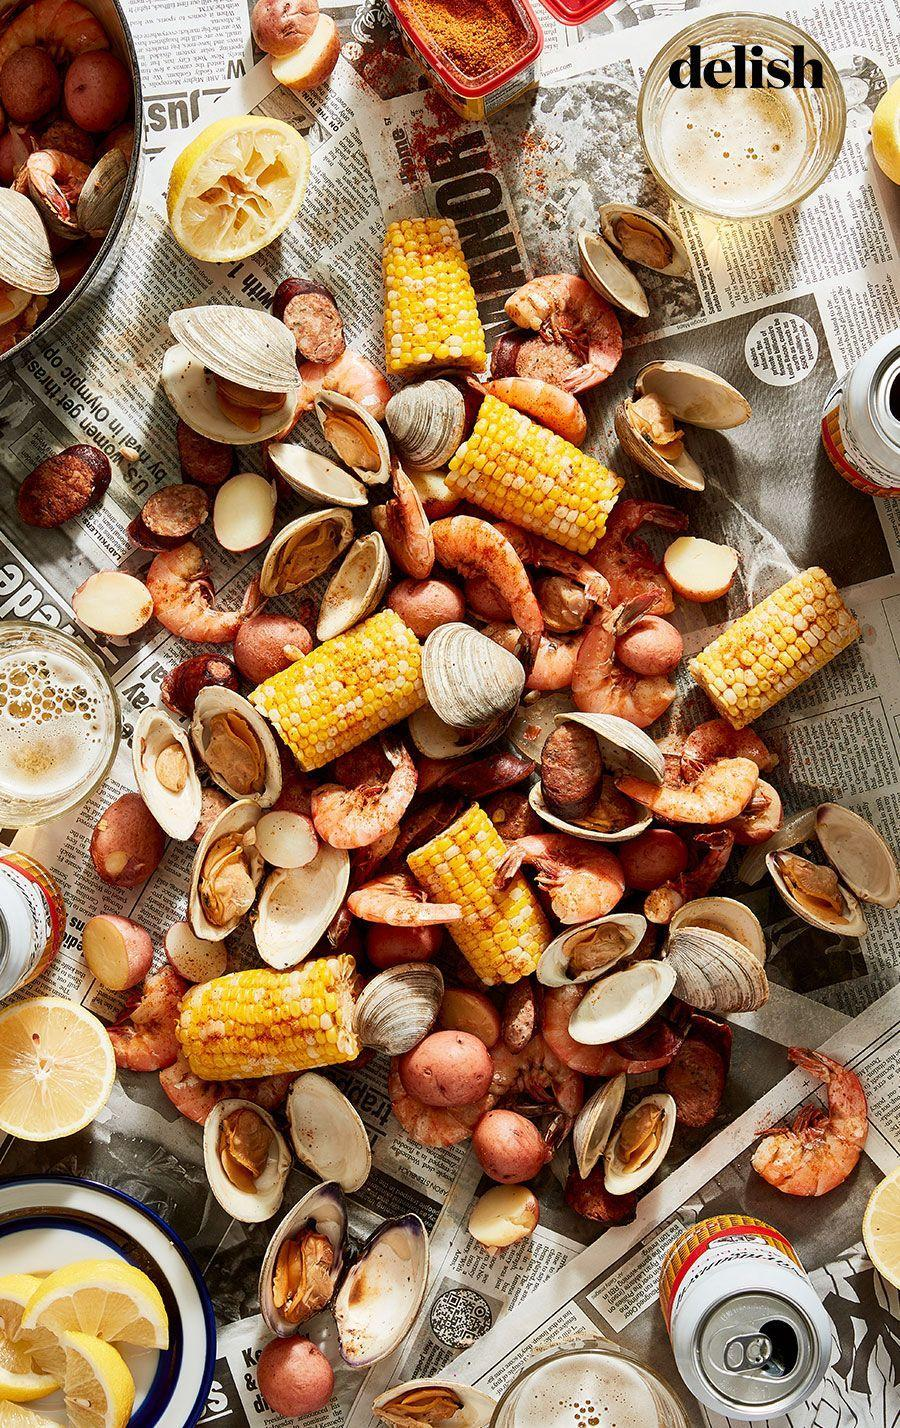 """<p>Red potatoes soak up the Old Bay boiling liquid for a healthy starch that tastes like vacation.</p><p>Get the recipe from <a href=""""https://www.delish.com/cooking/recipe-ideas/a36958848/seafood-boil-recipe/"""" rel=""""nofollow noopener"""" target=""""_blank"""" data-ylk=""""slk:Delish"""" class=""""link rapid-noclick-resp"""">Delish</a>.</p>"""